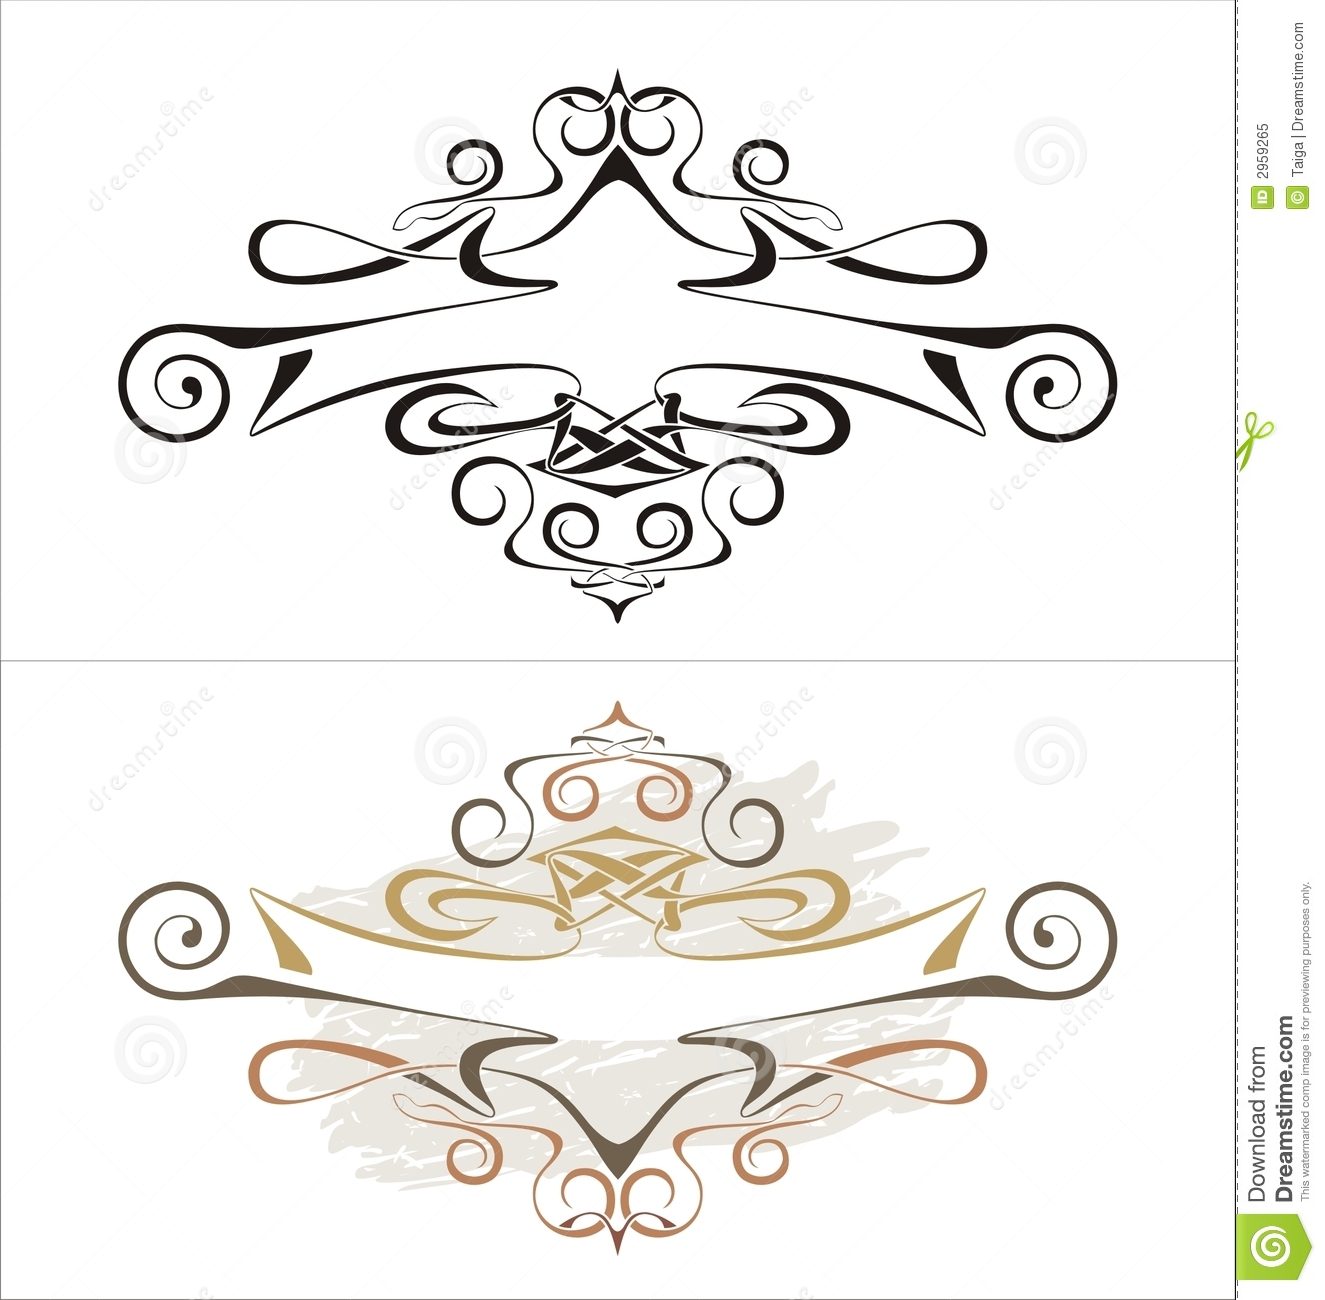 Cartouche, Vector Royalty Free Stock Photography - Image: 931237